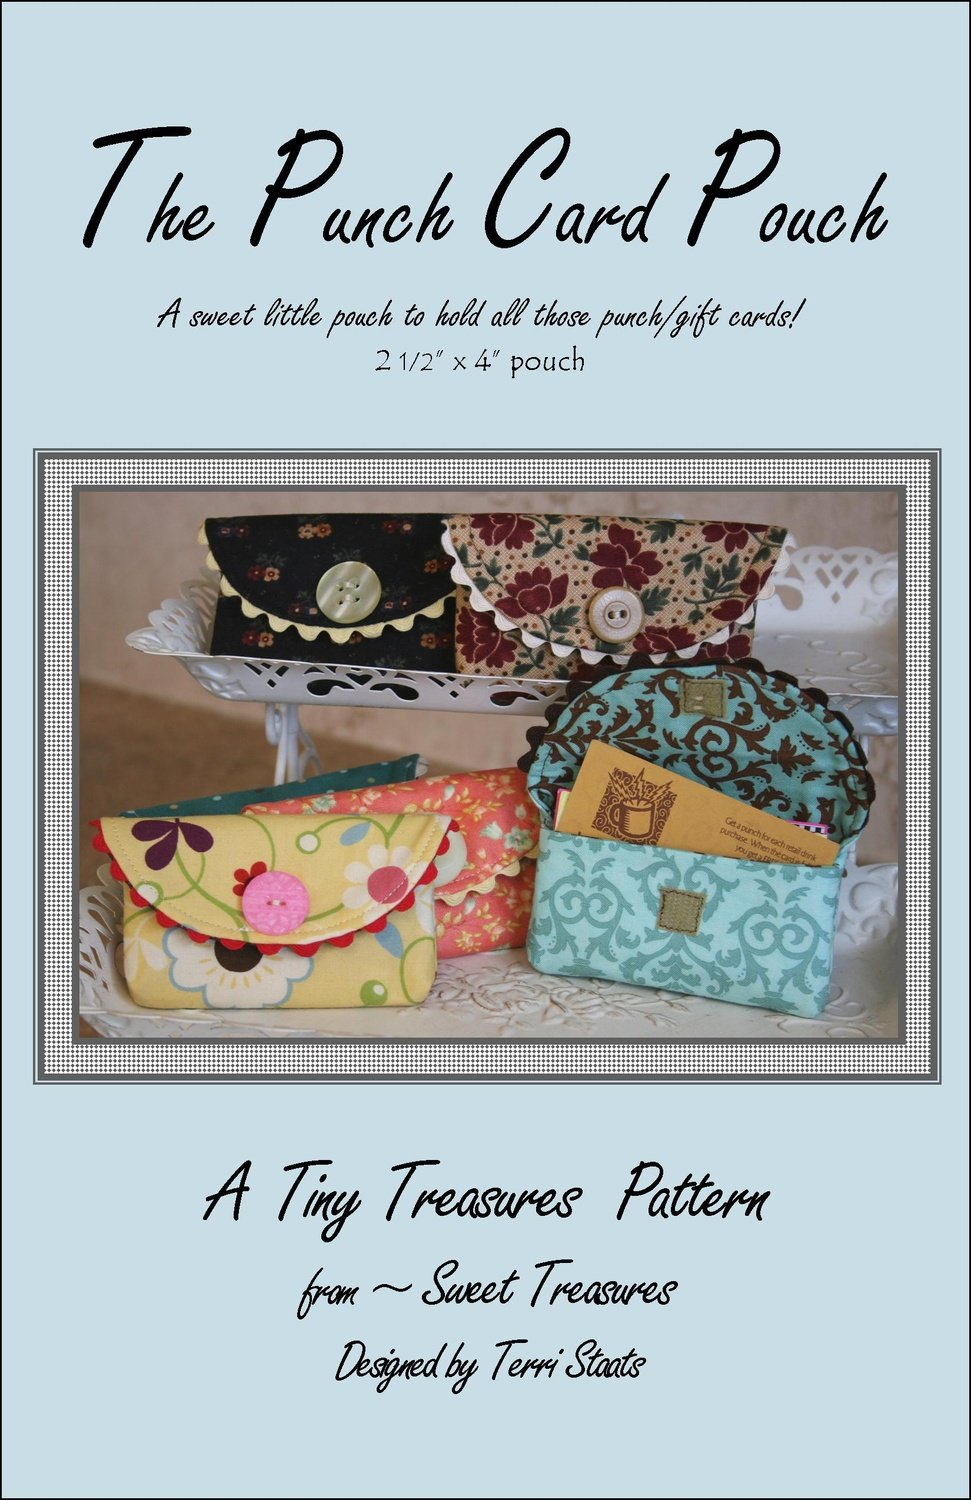 The Punch Card Pouch pattern